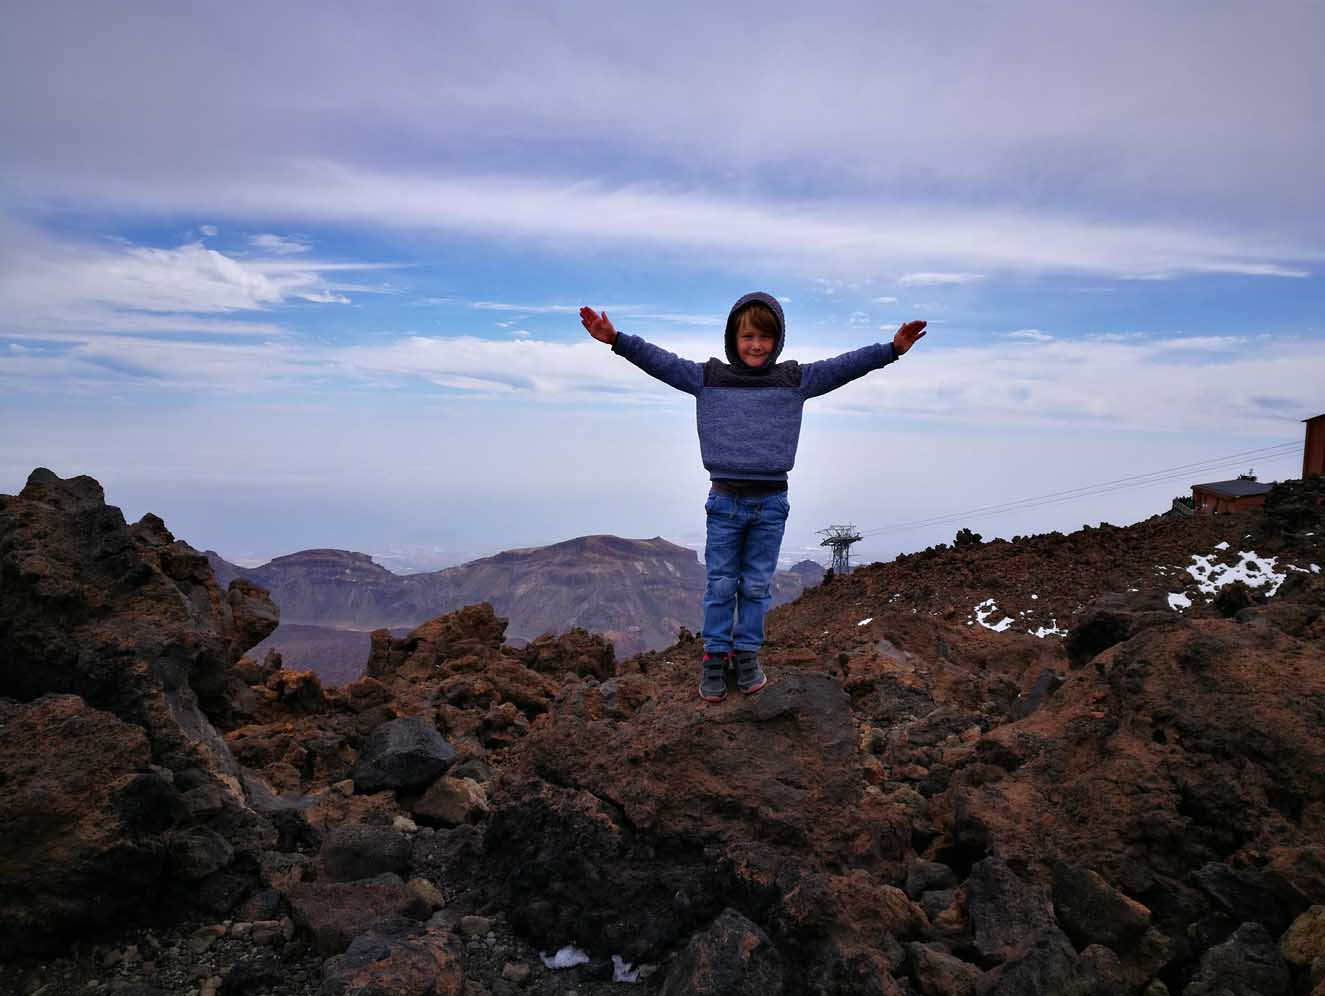 Free Things to Do With Kids in Tenerife - Mount Teide National Park With Kids